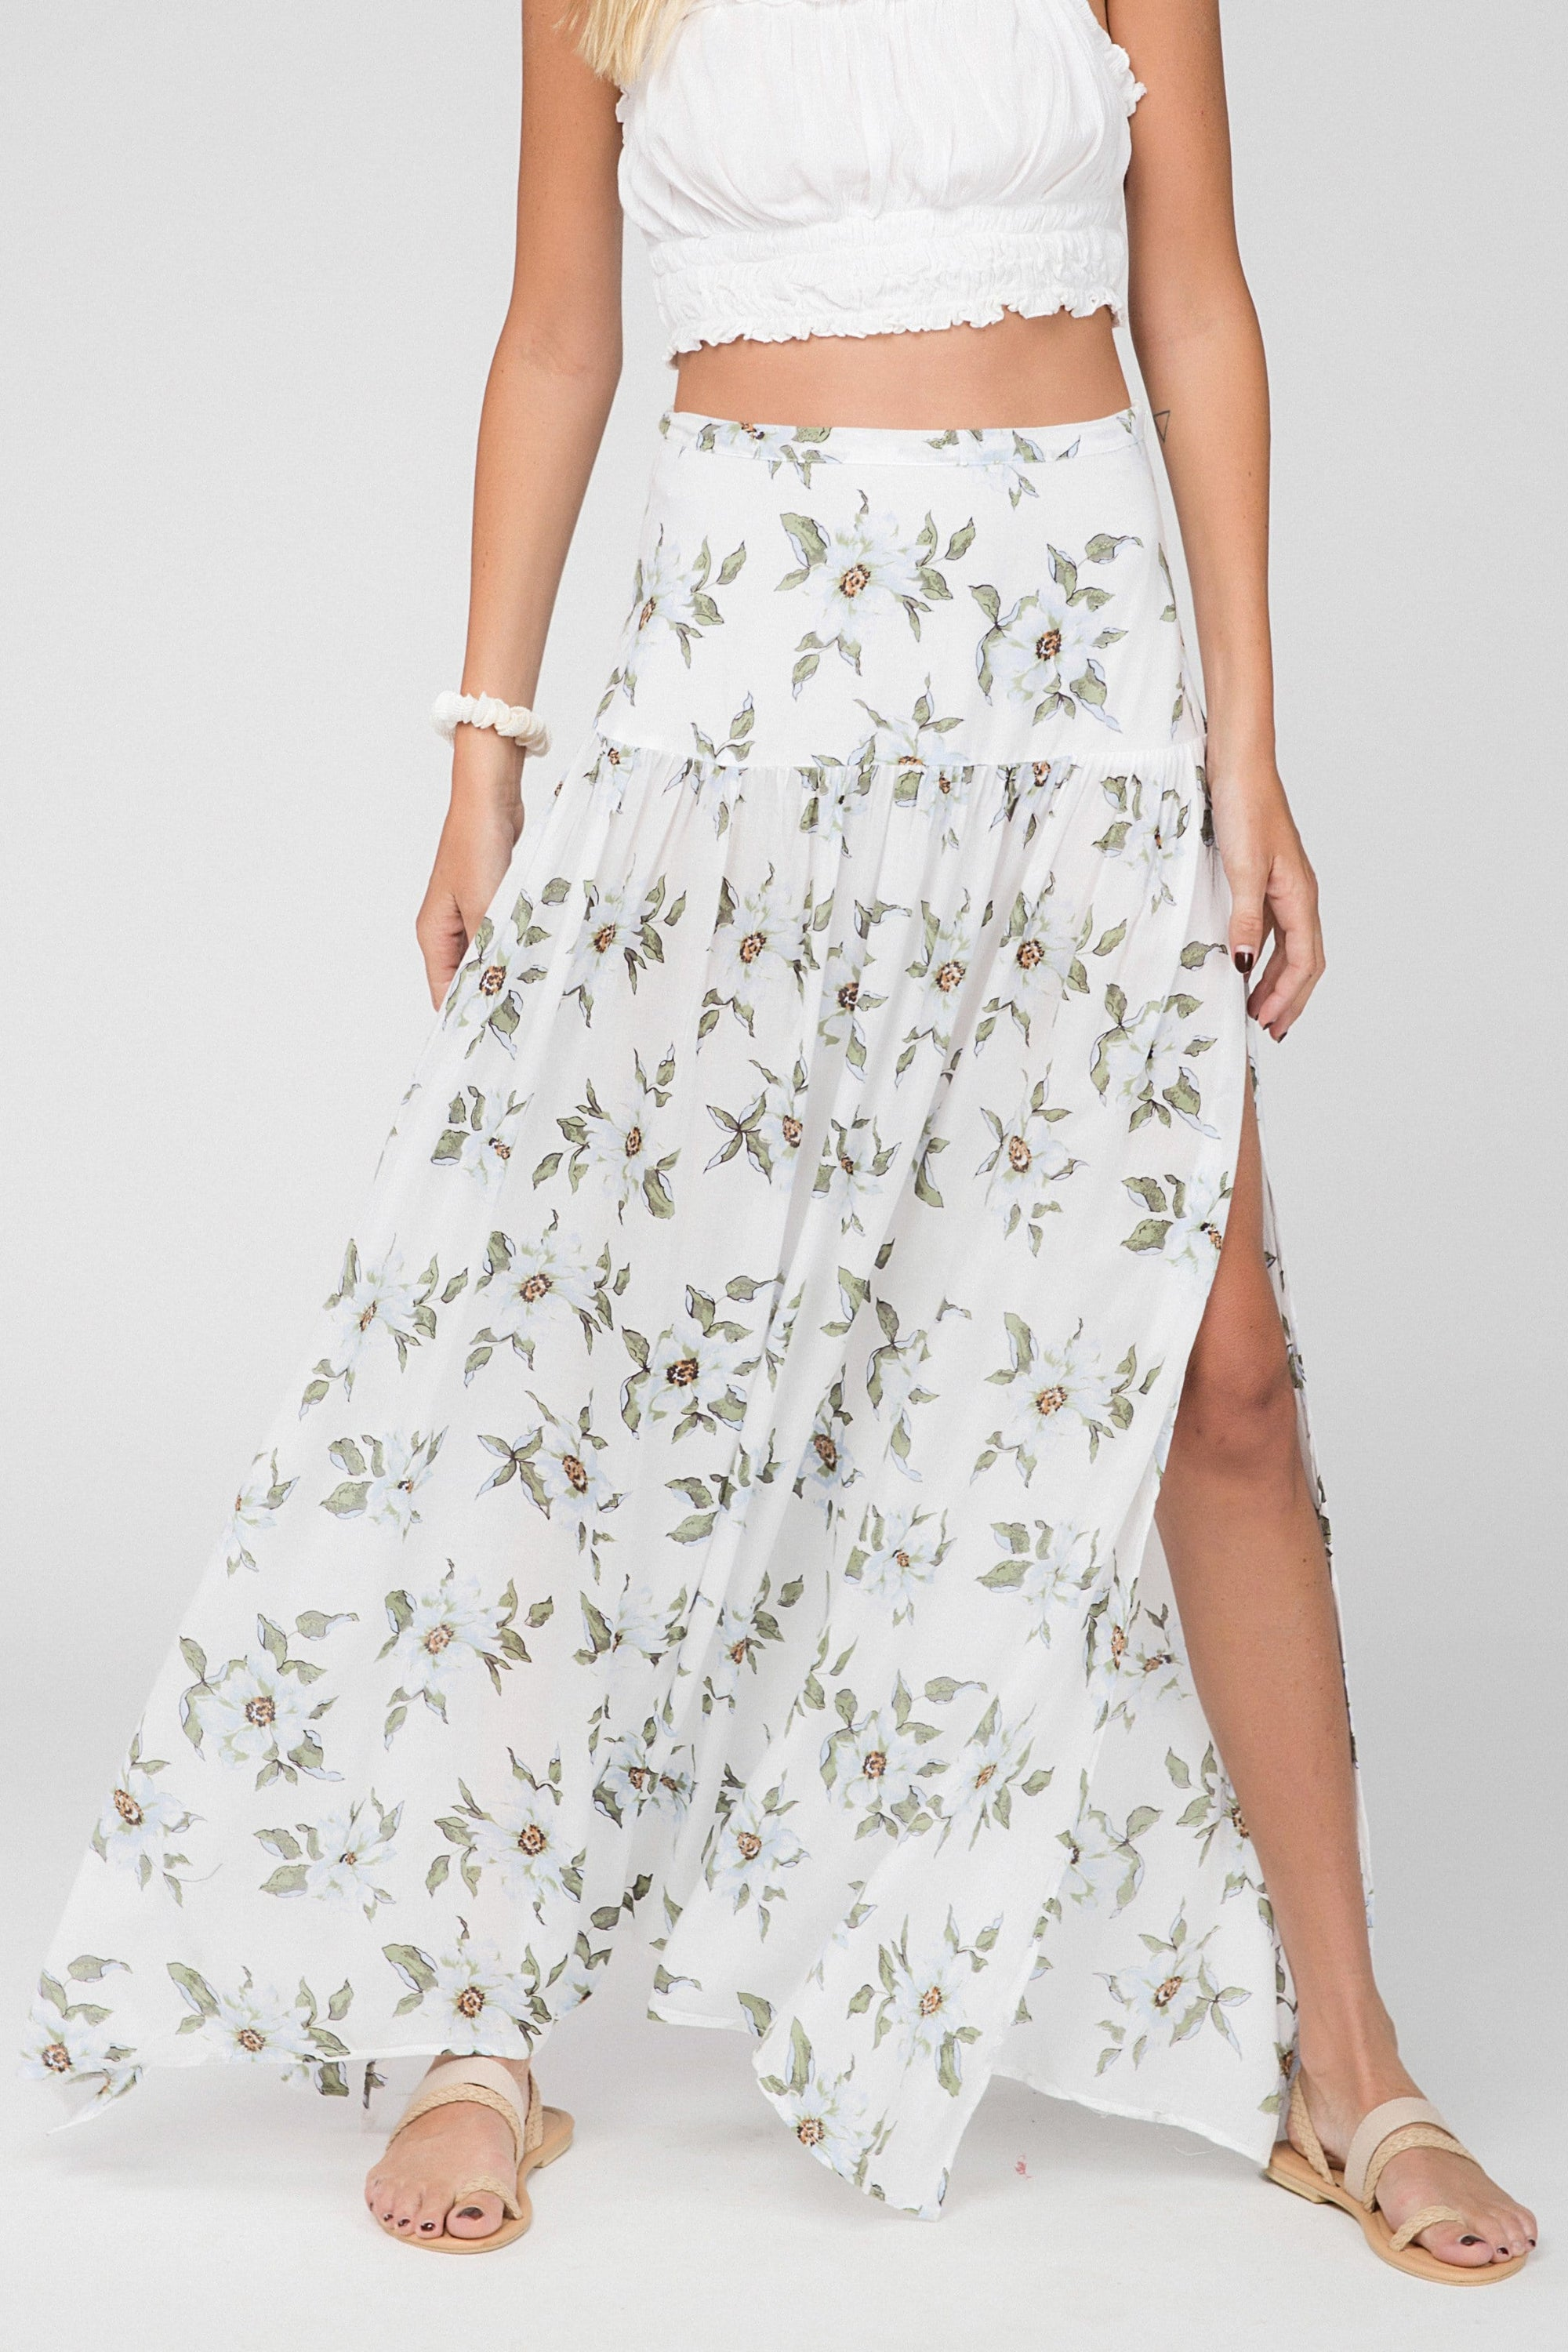 Bianca Skirt - Skirt - LOST IN PARADISE